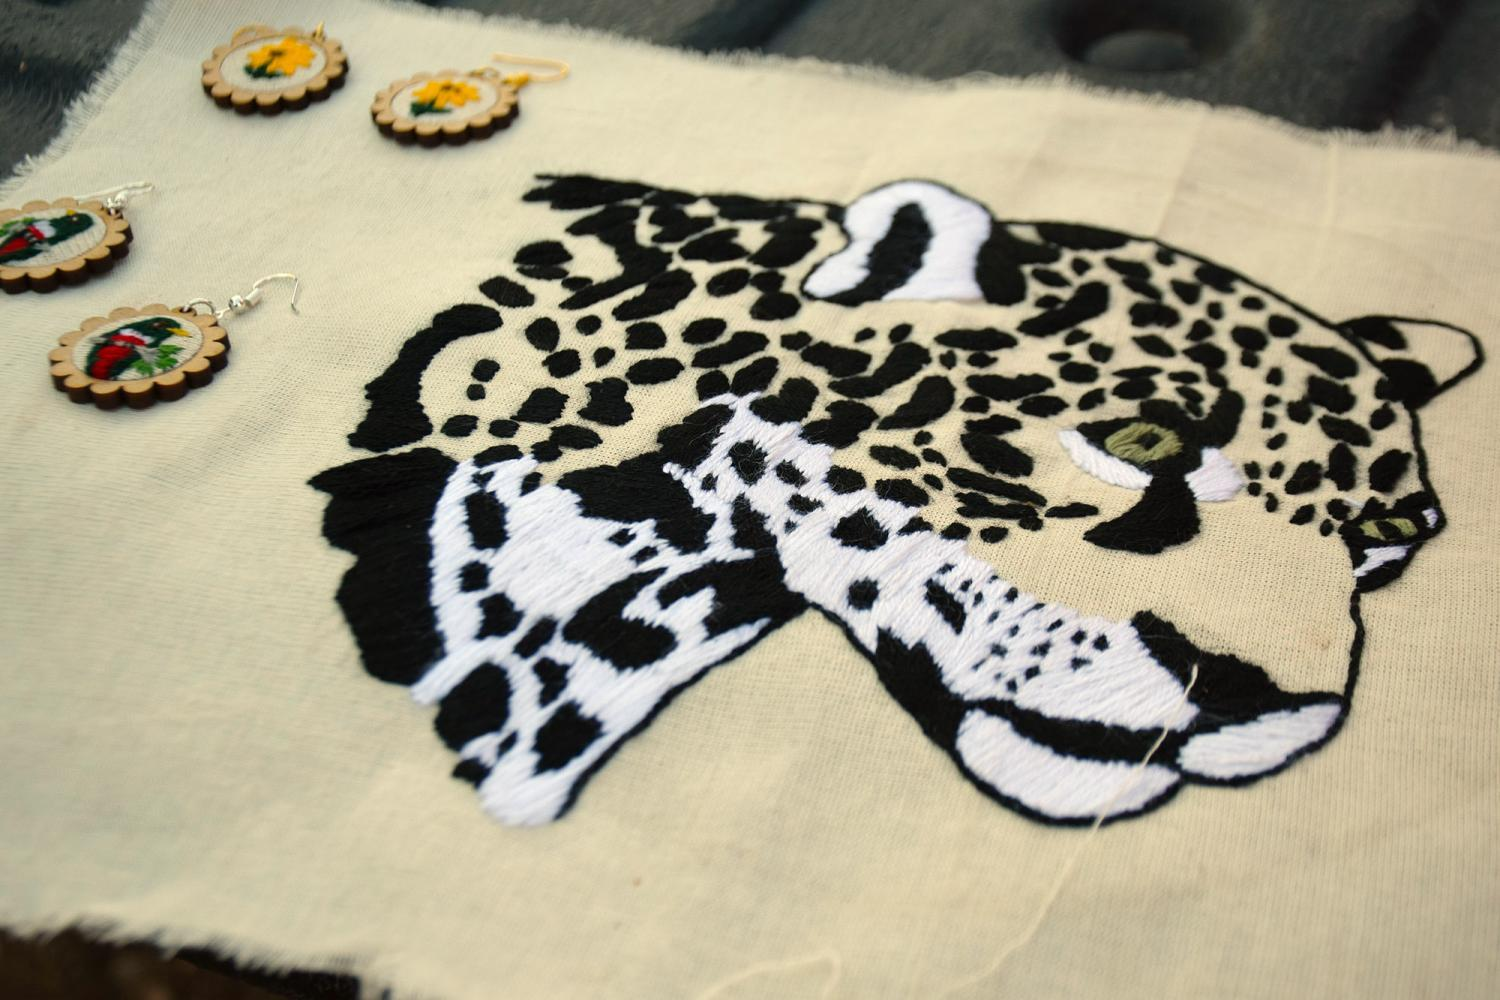 Jaguar embroidery